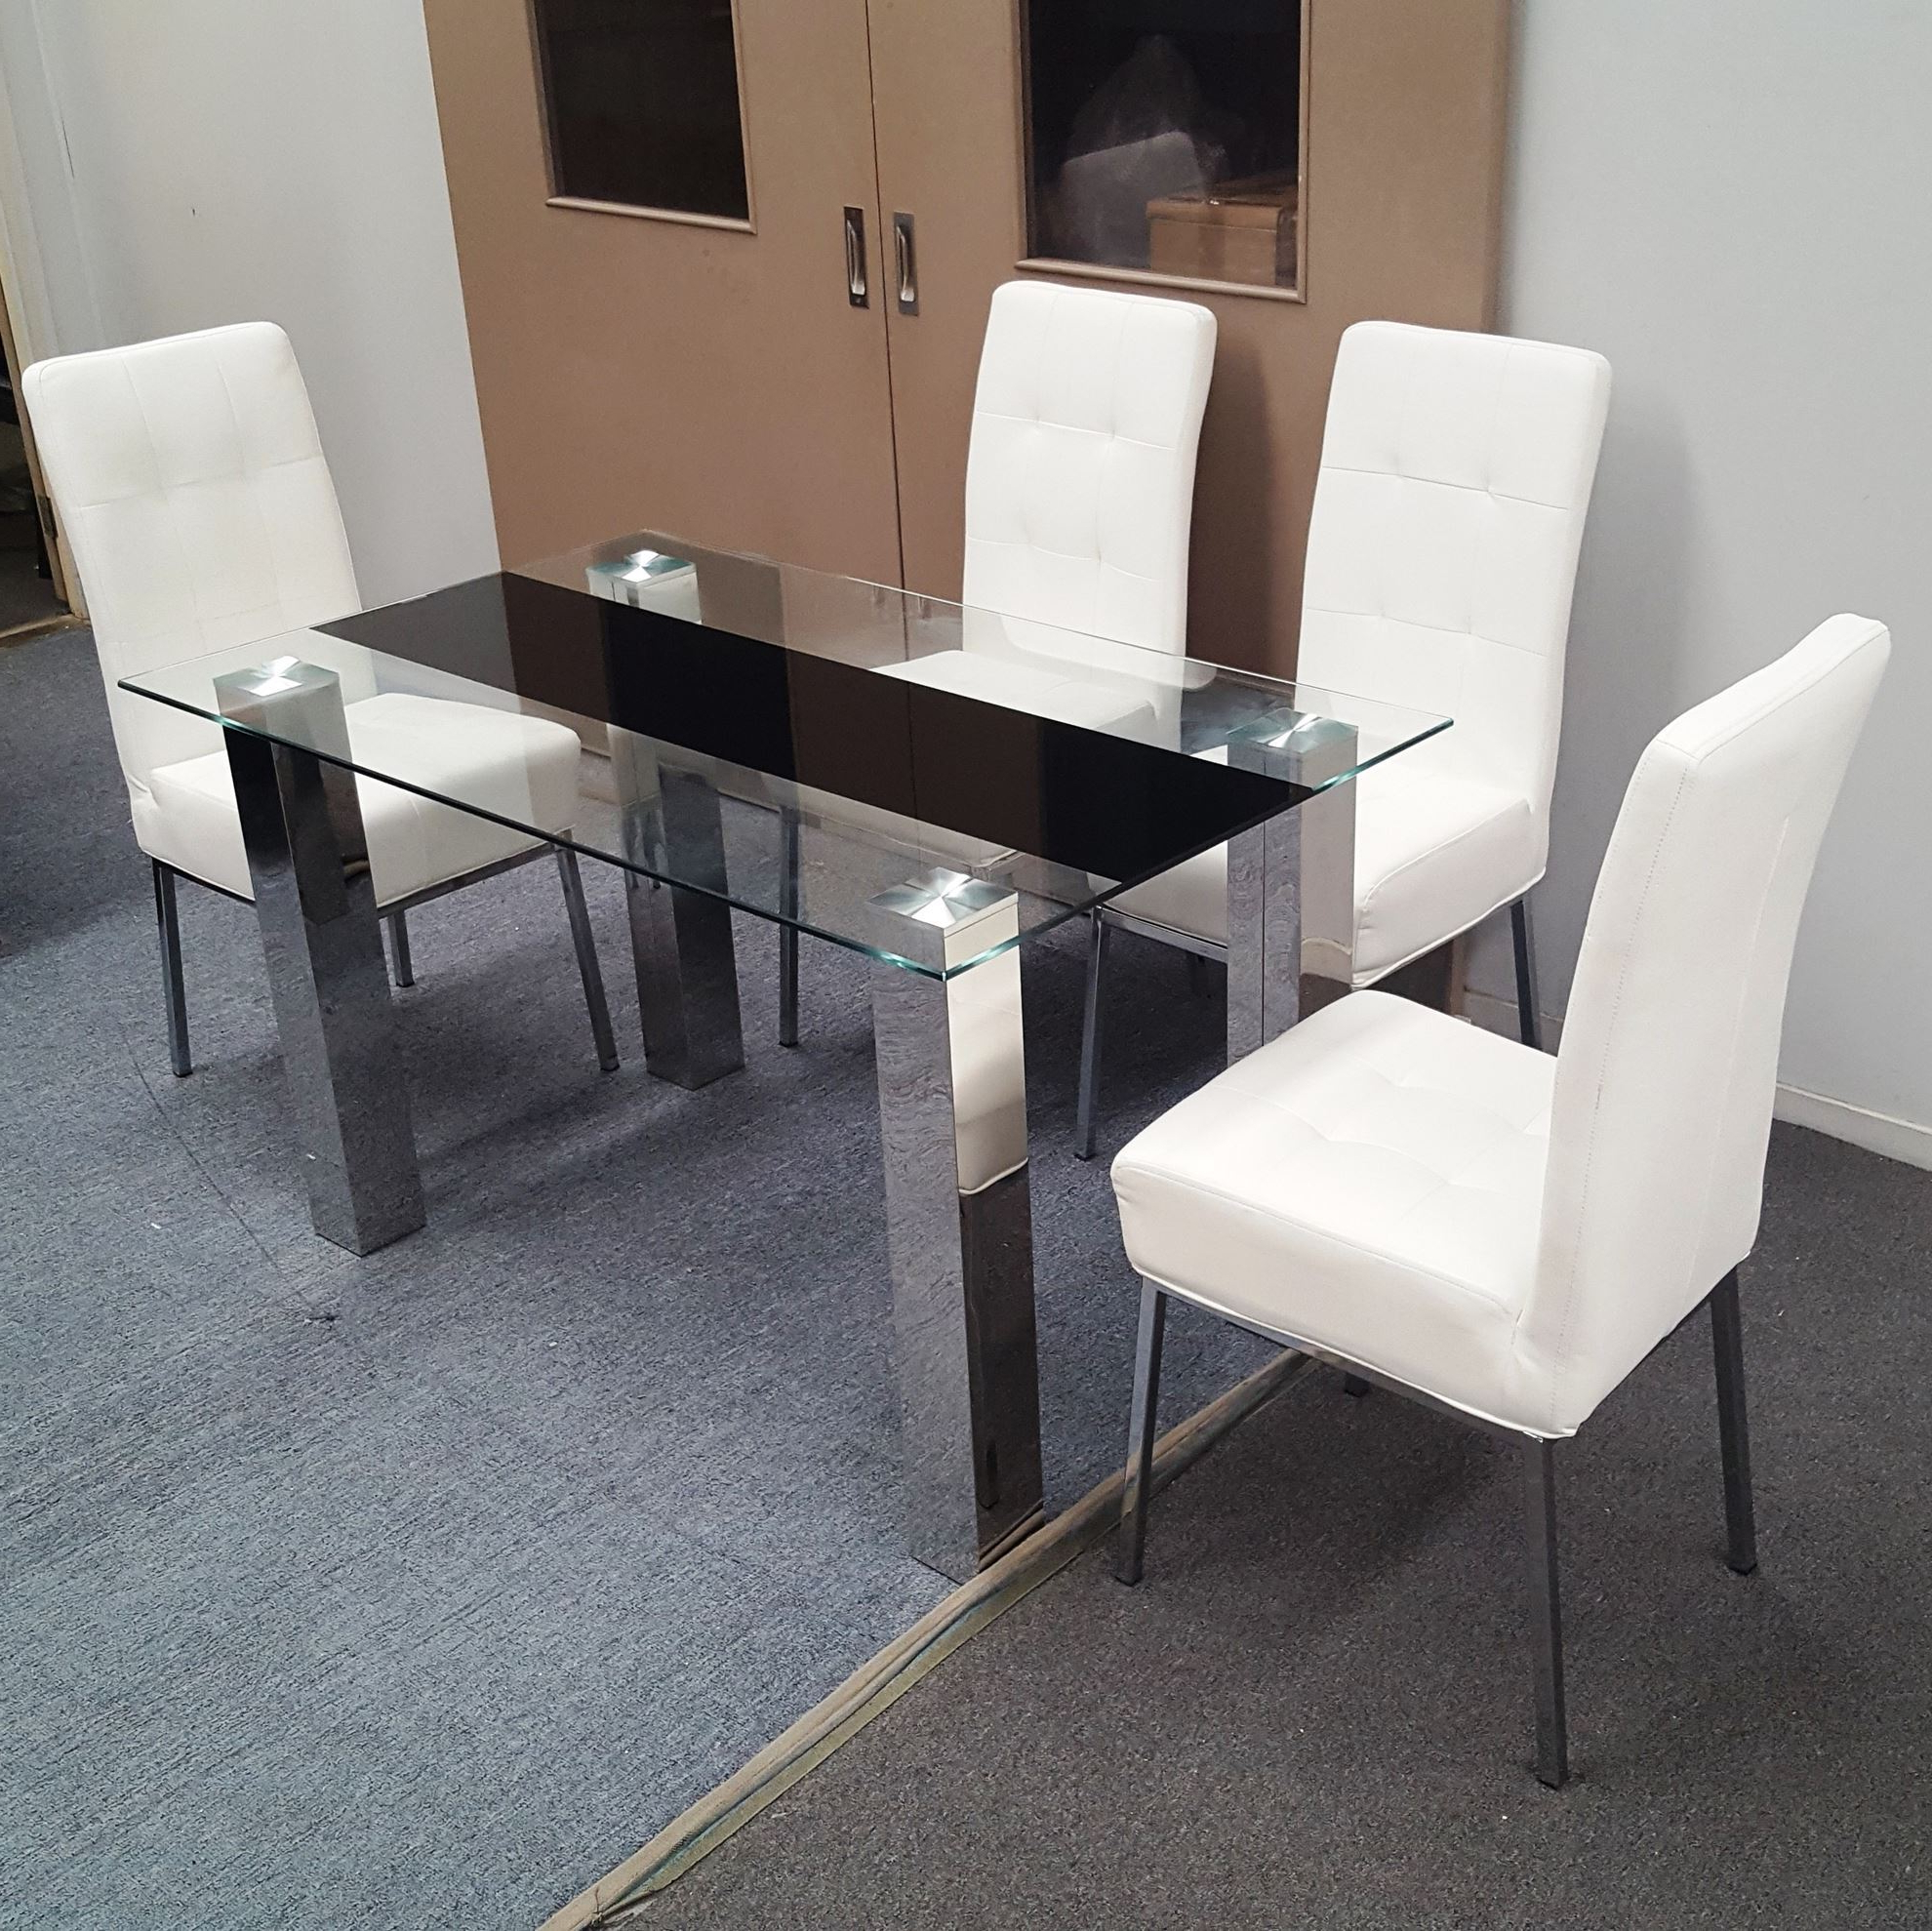 Chrome Dining Tables With Tempered Glass For Preferred Levi Dining Table Tempered Glass 1300Mm X 800Mm (Table Only) (View 20 of 25)